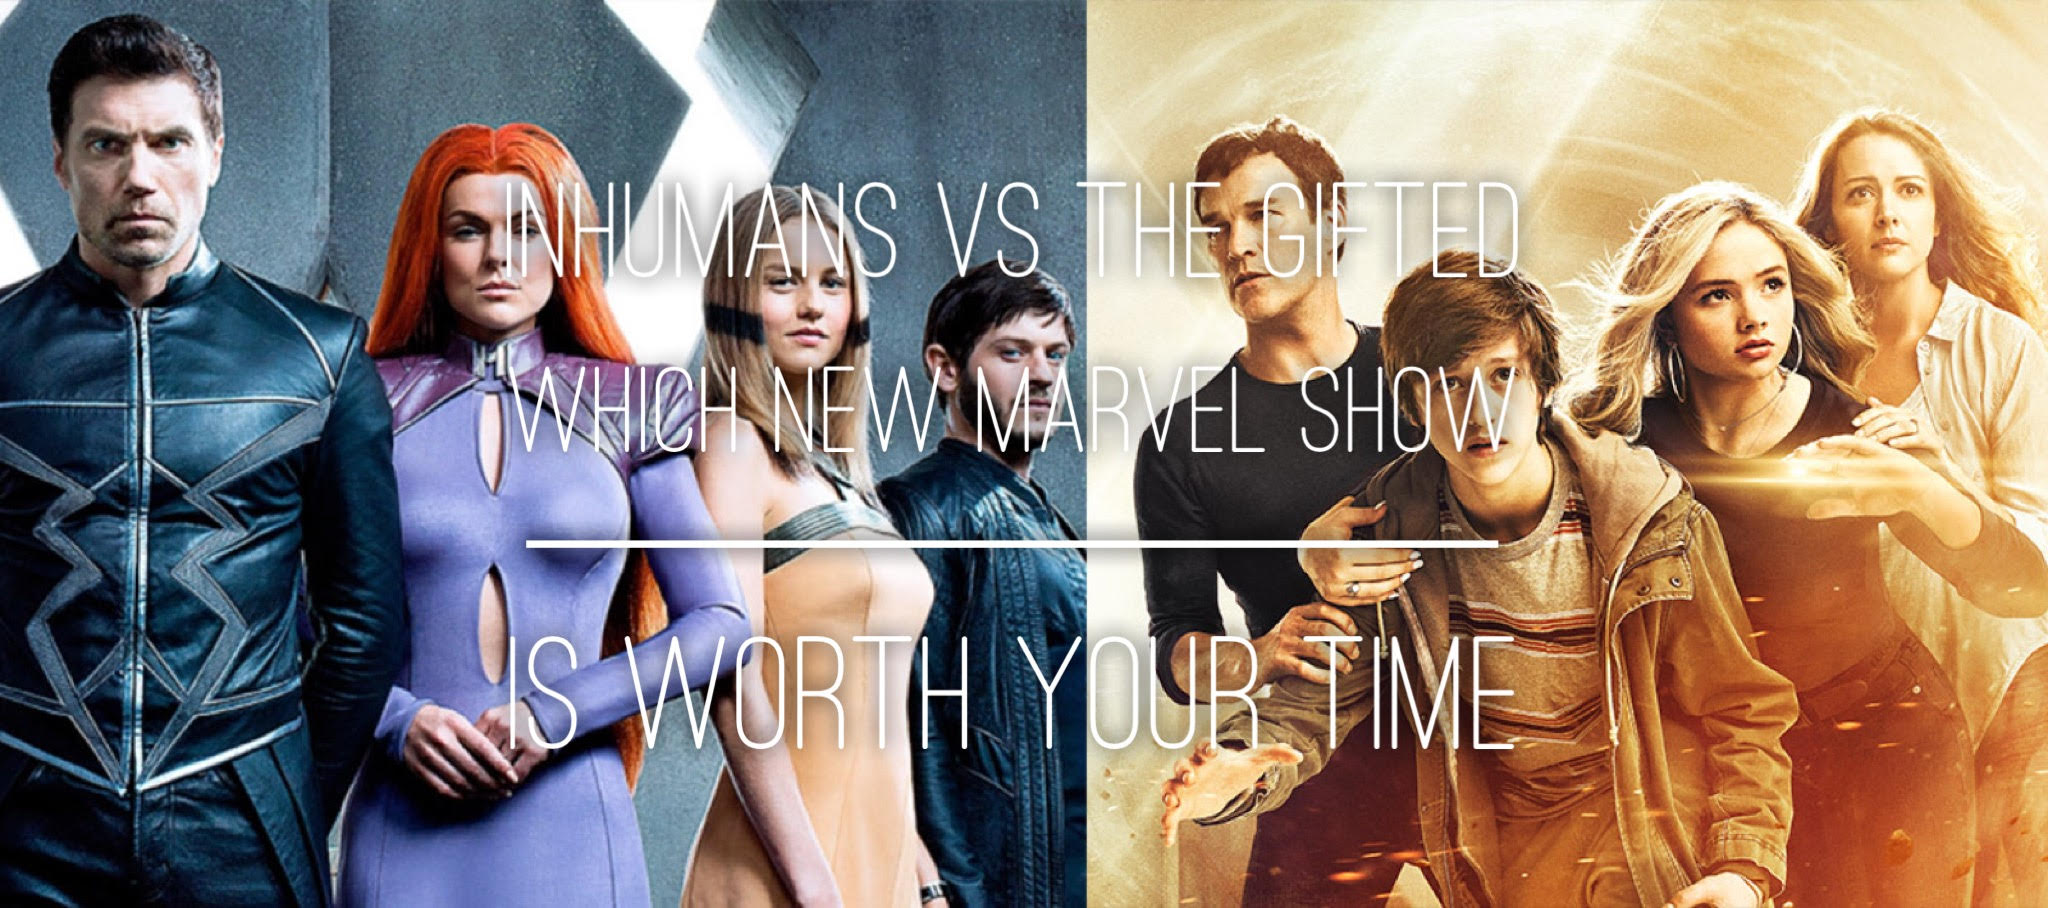 Inhumans vs The Gifted – Which New Marvel Show Is Actually Worth Your Time